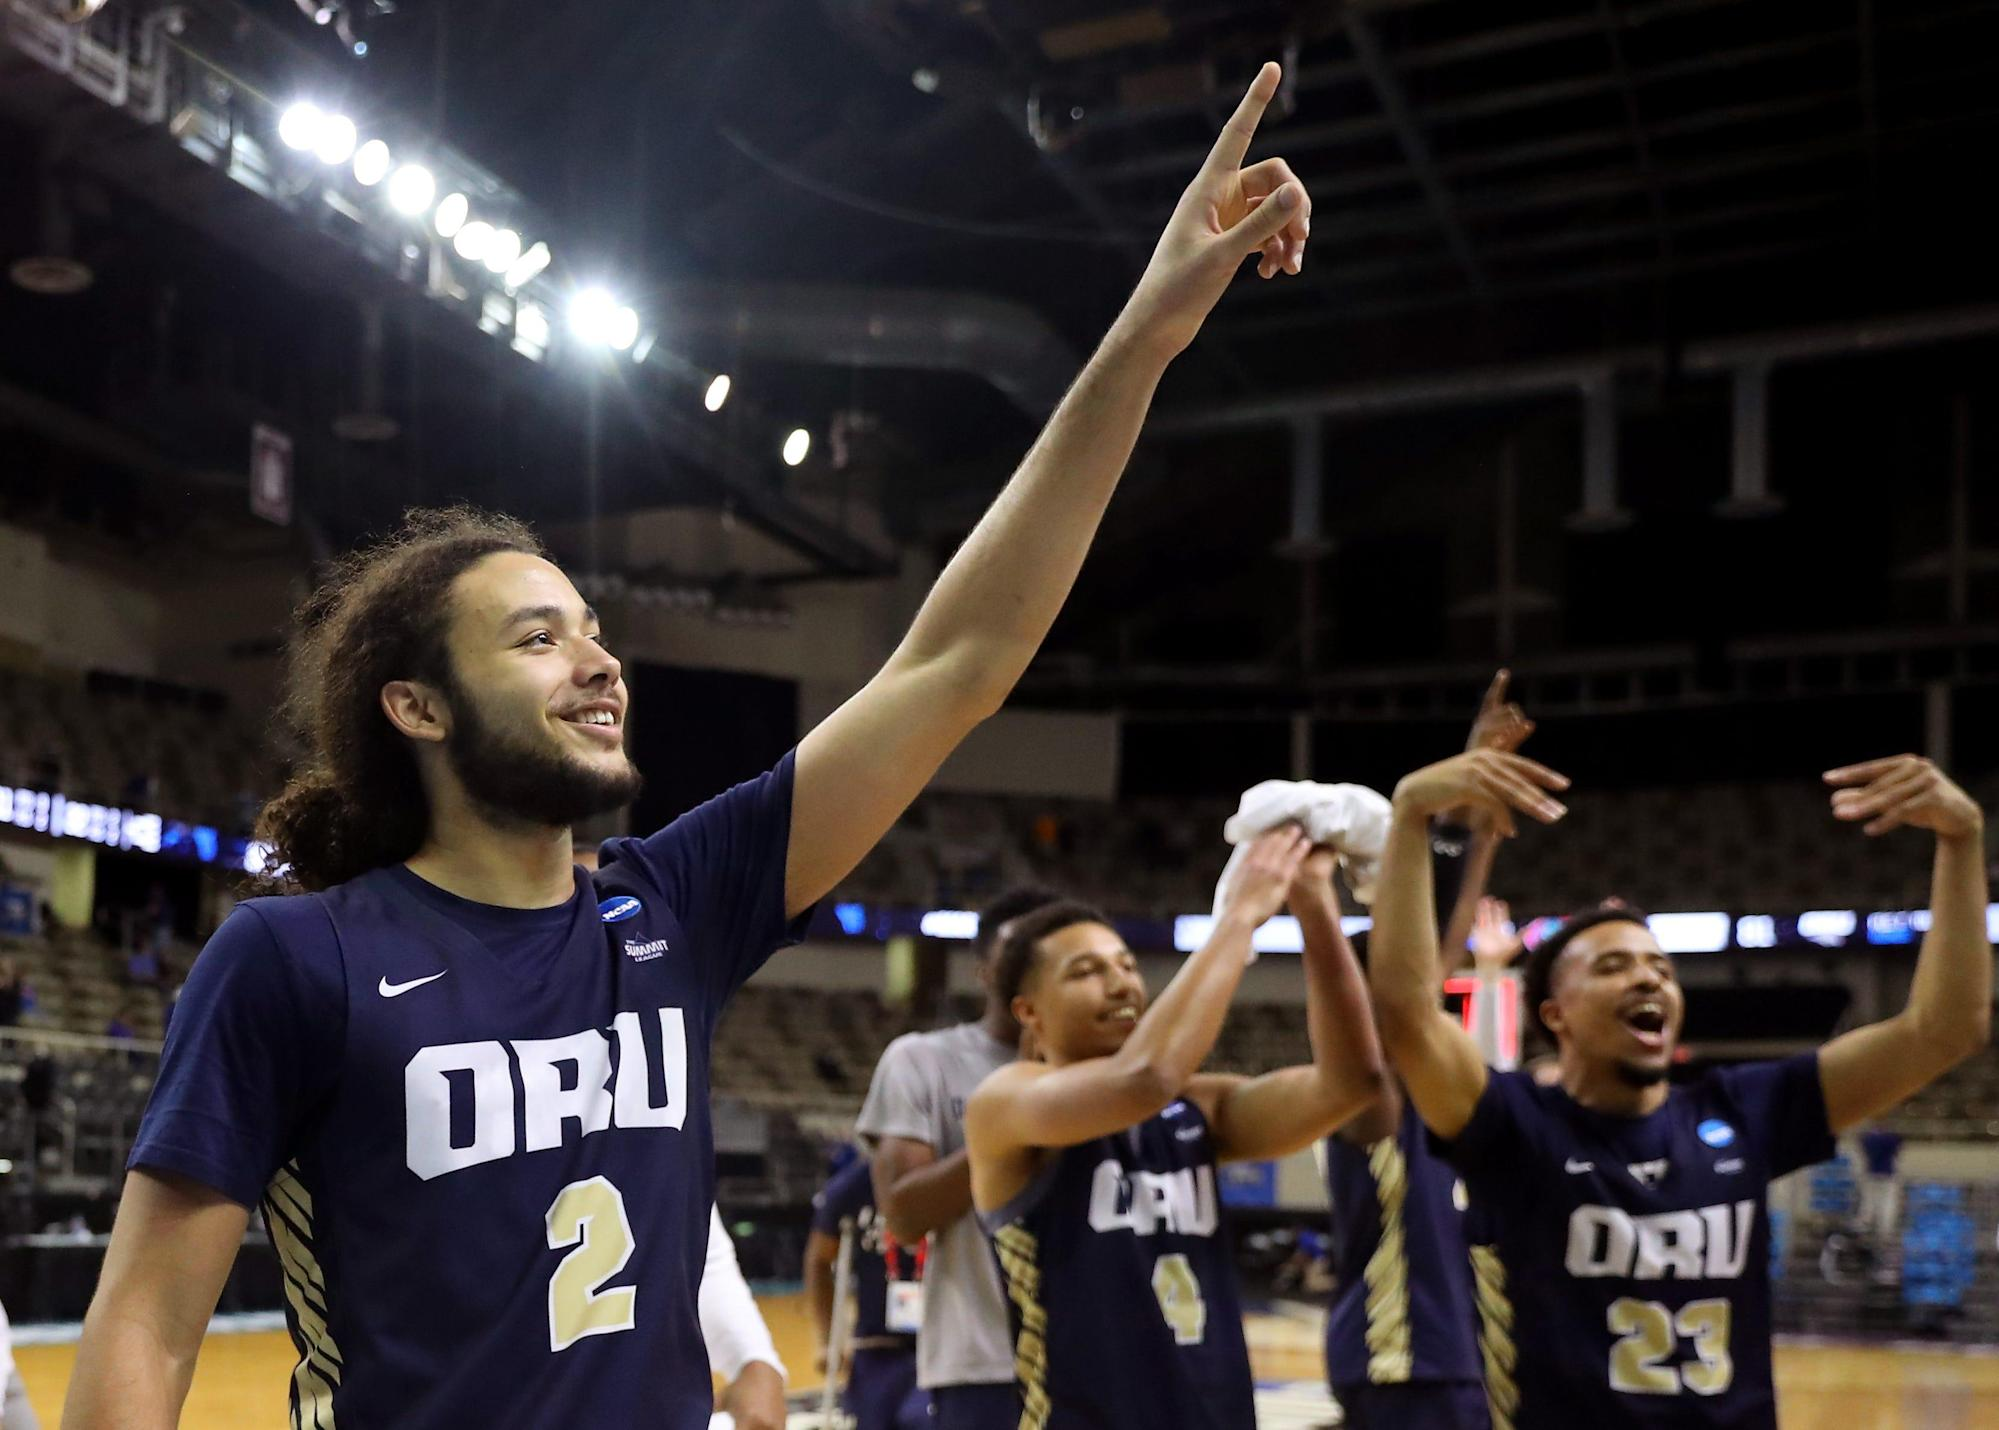 William Wilson on What Makes Oral Roberts University the Cinderella Team of the 2021 NCAA Tournament?